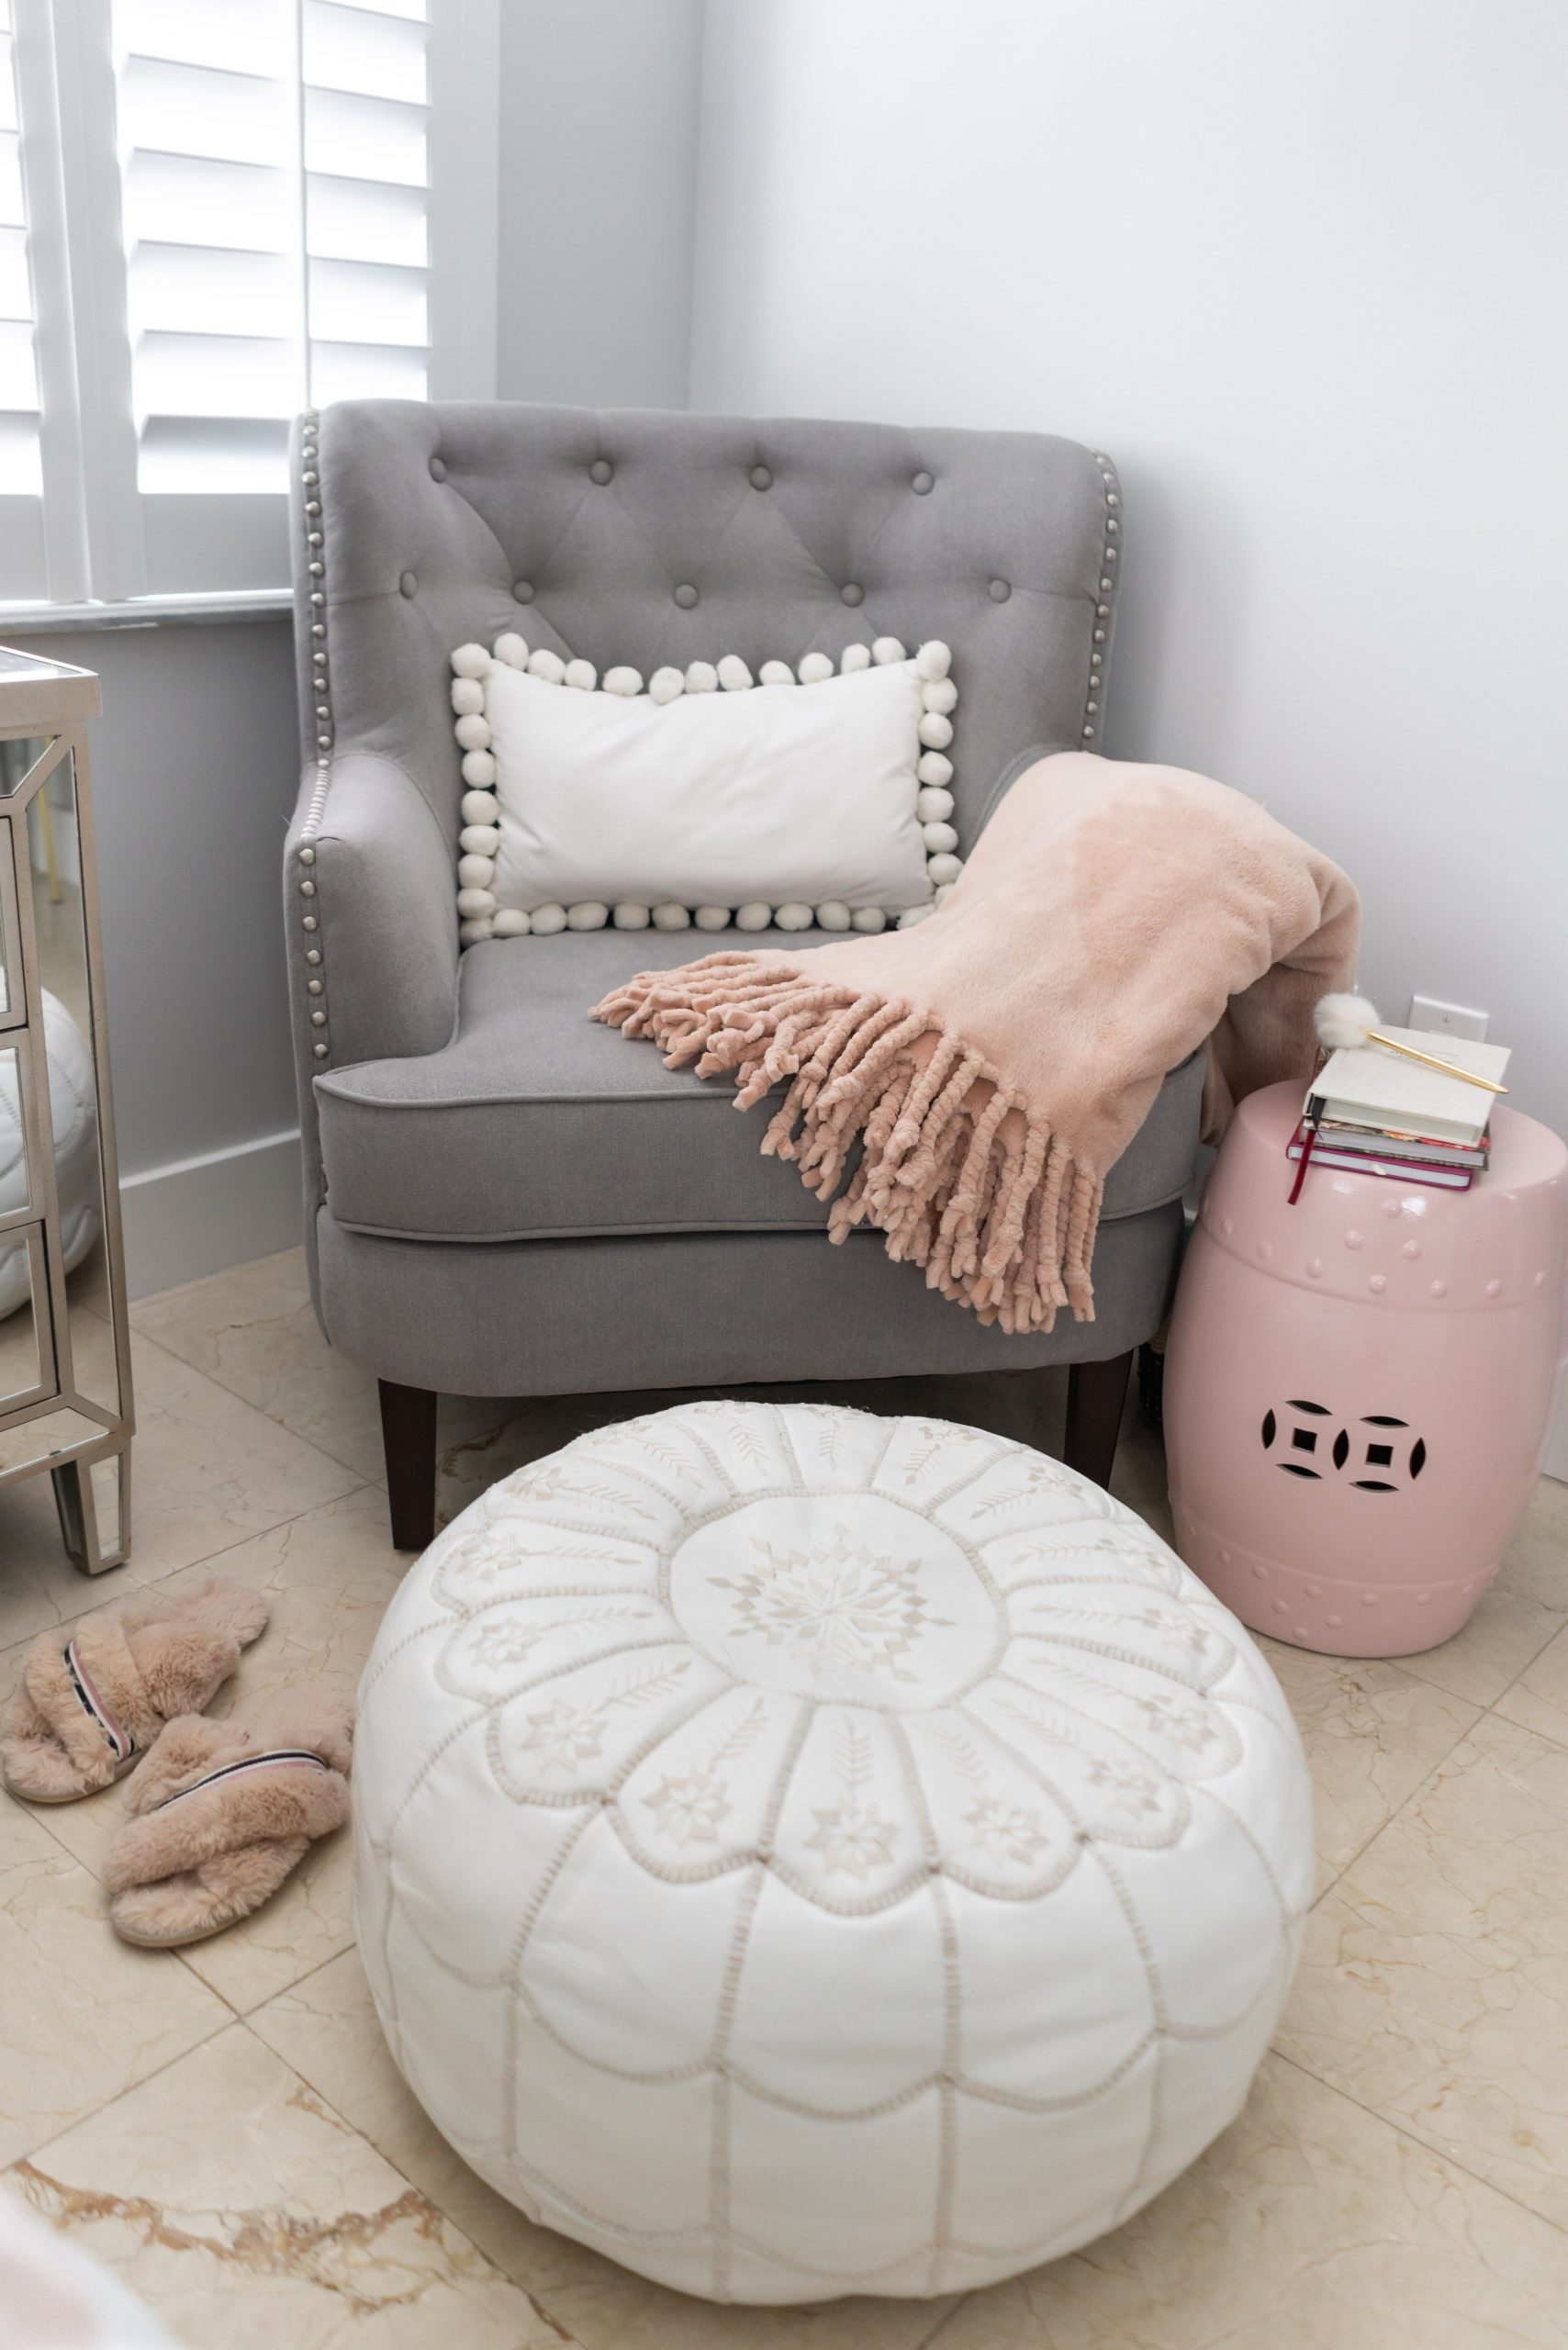 How To Make Your Bedroom Cozy (My 5 Tips) – The – pickndecor.com/furniture